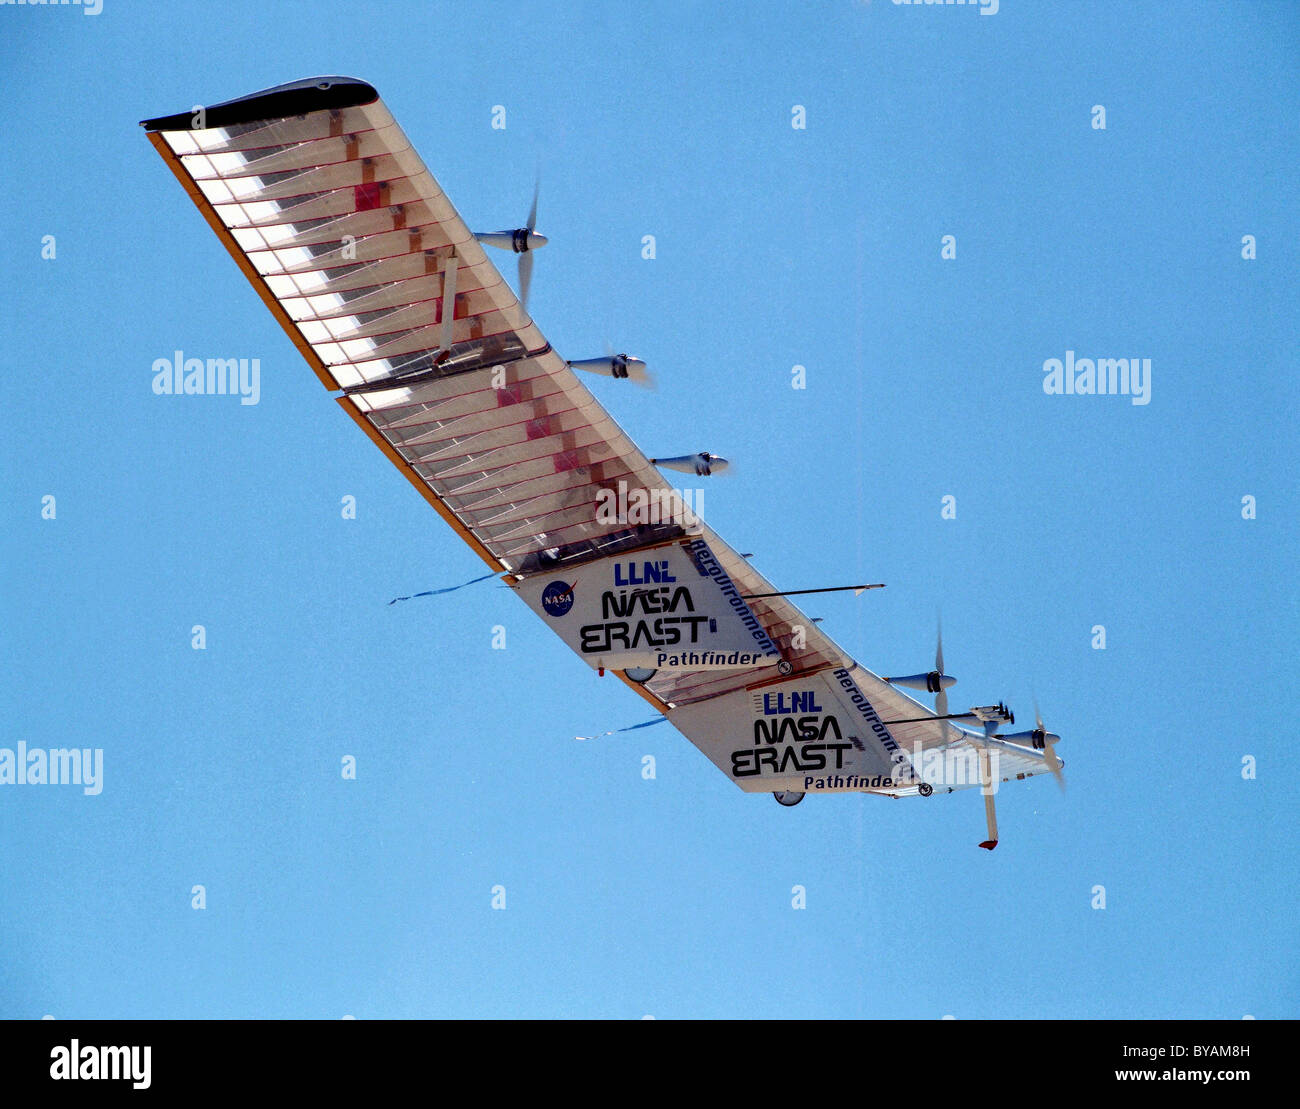 Pathfinder aircraft, solar-powered airplane - Stock Image